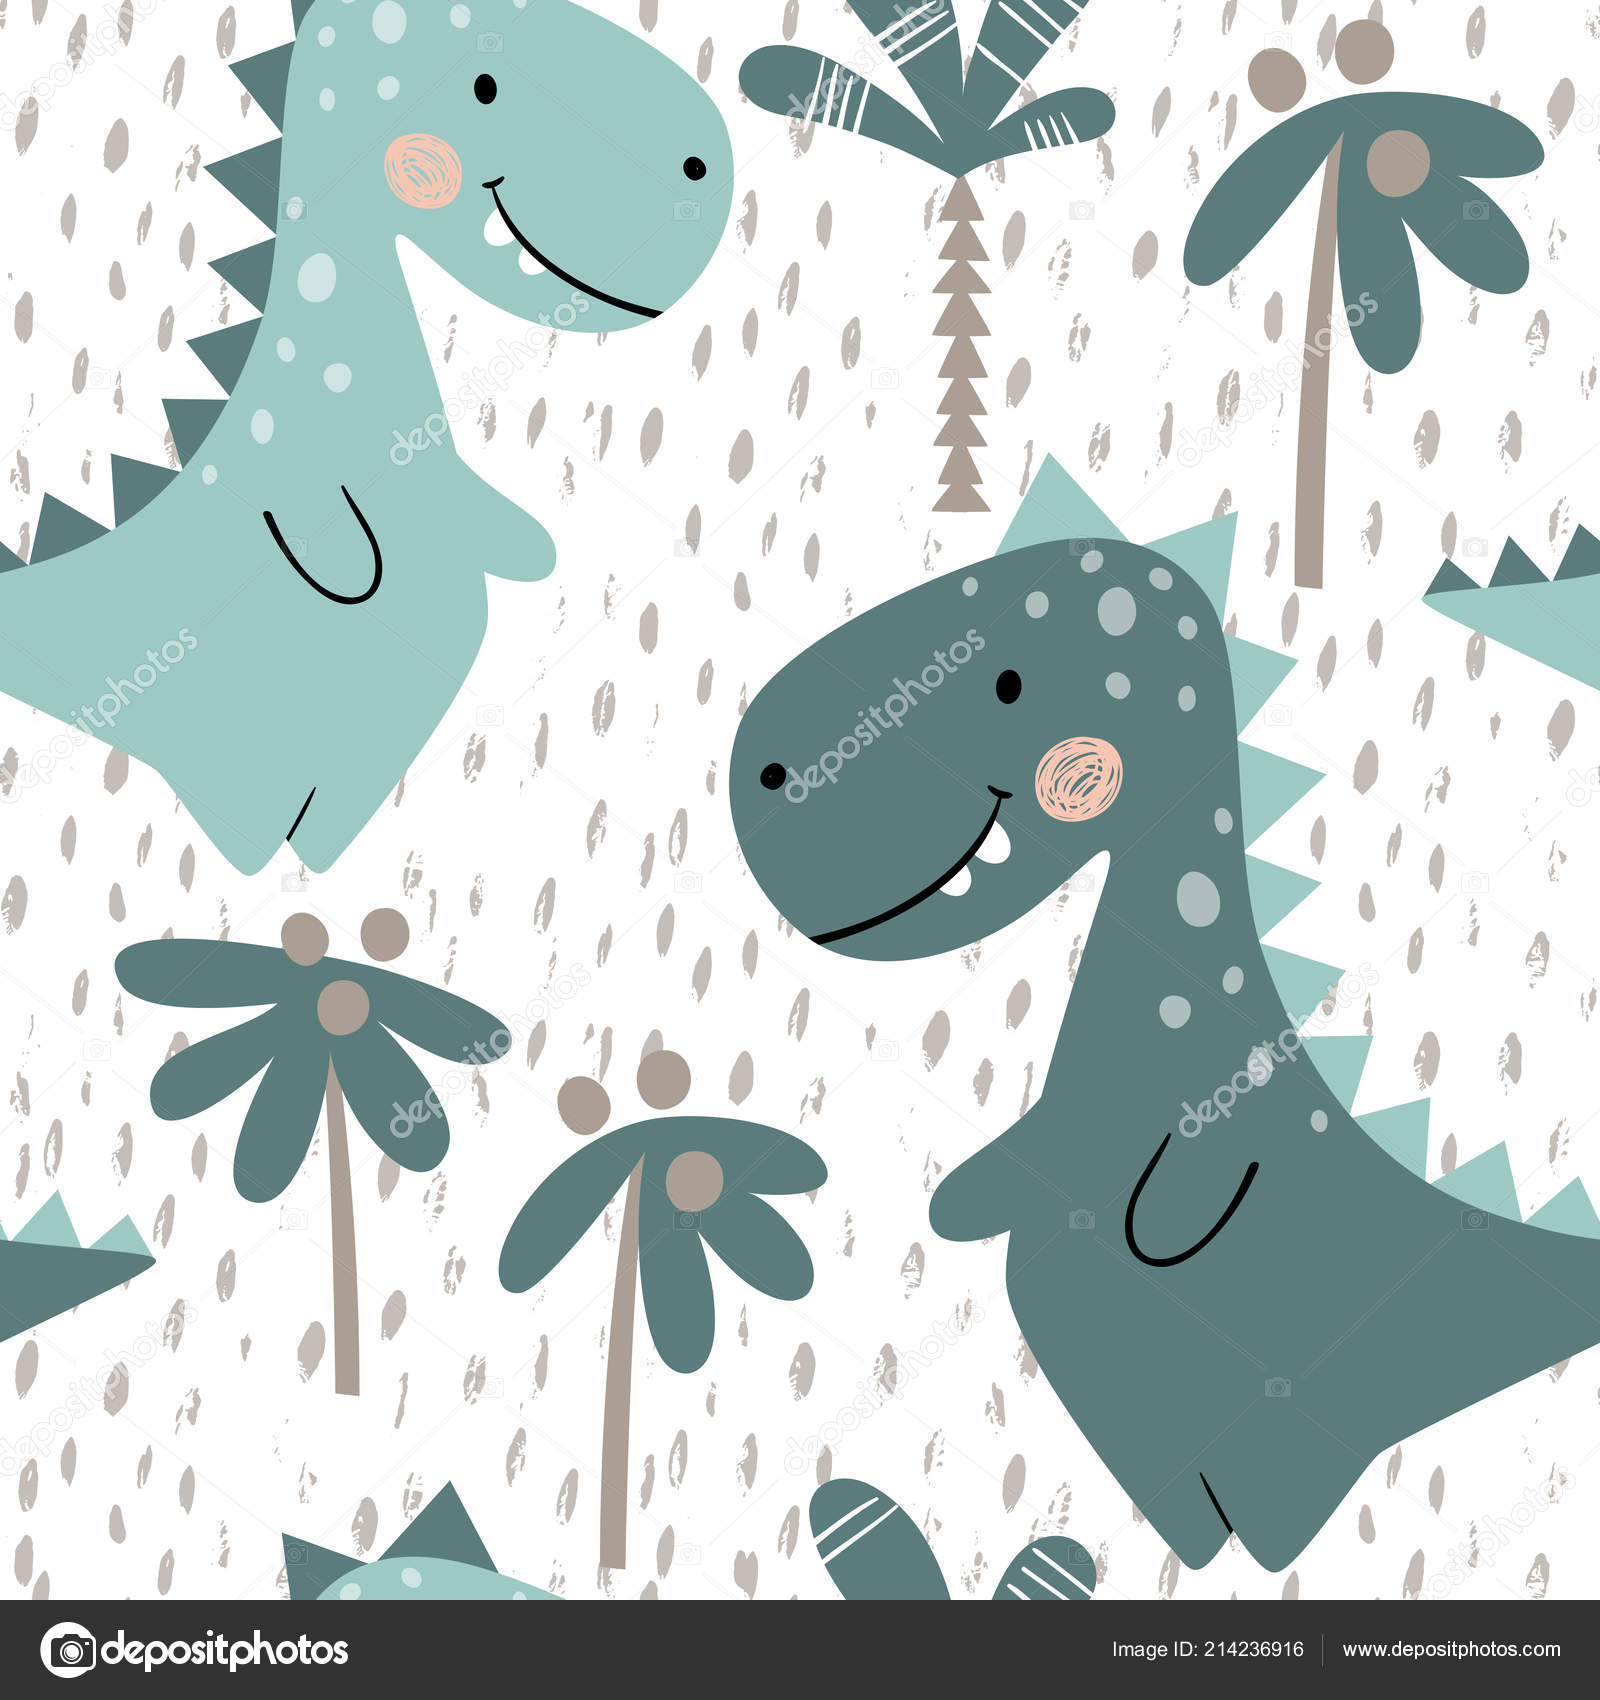 c18e32812 Dinosaur baby boy seamless pattern. Sweet dino with palm. Scandinavian cute  print. Cool t-rex illustration for nursery t-shirt, kids apparel, ...